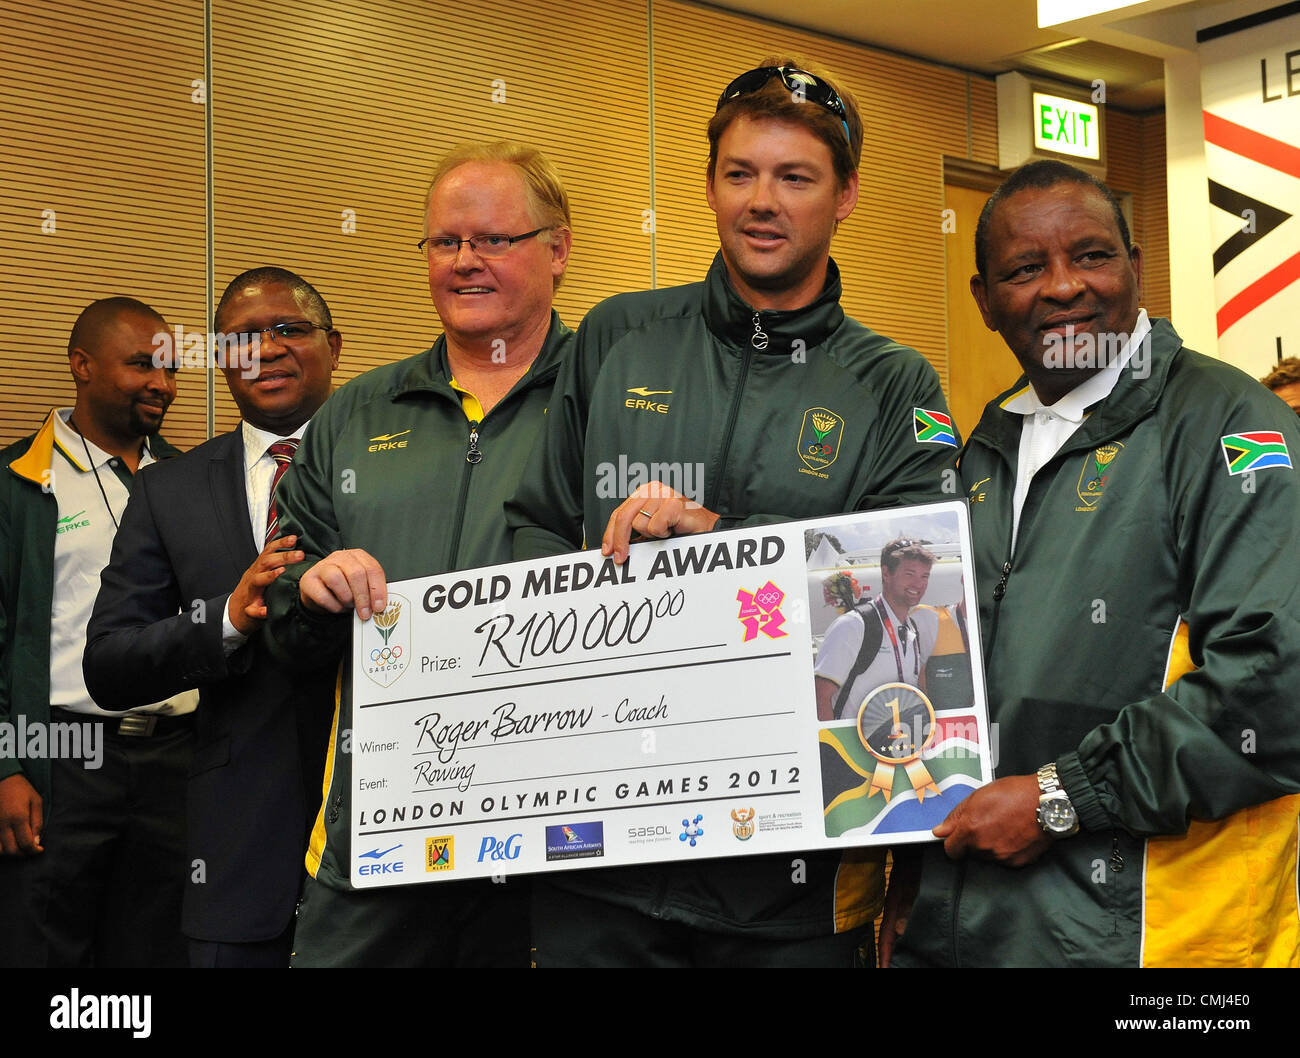 14th Aug 2012 Johannesburg, South Africa. Rowing coach Roger Barrow and assistant coach (Right) with Fikile Mdlalula - Stock Image